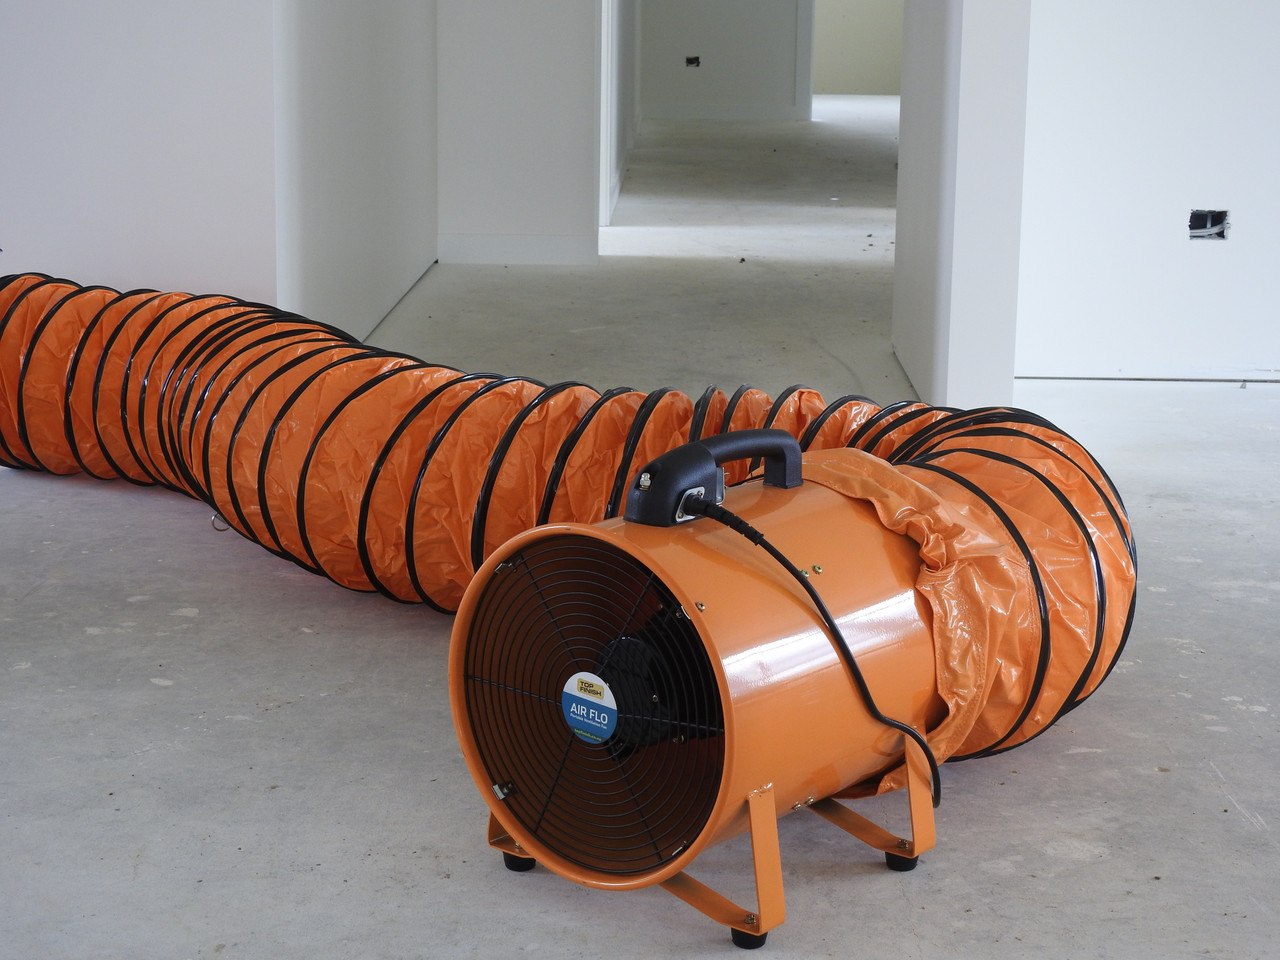 300mm portable dual function ventilation fan blows and extracts